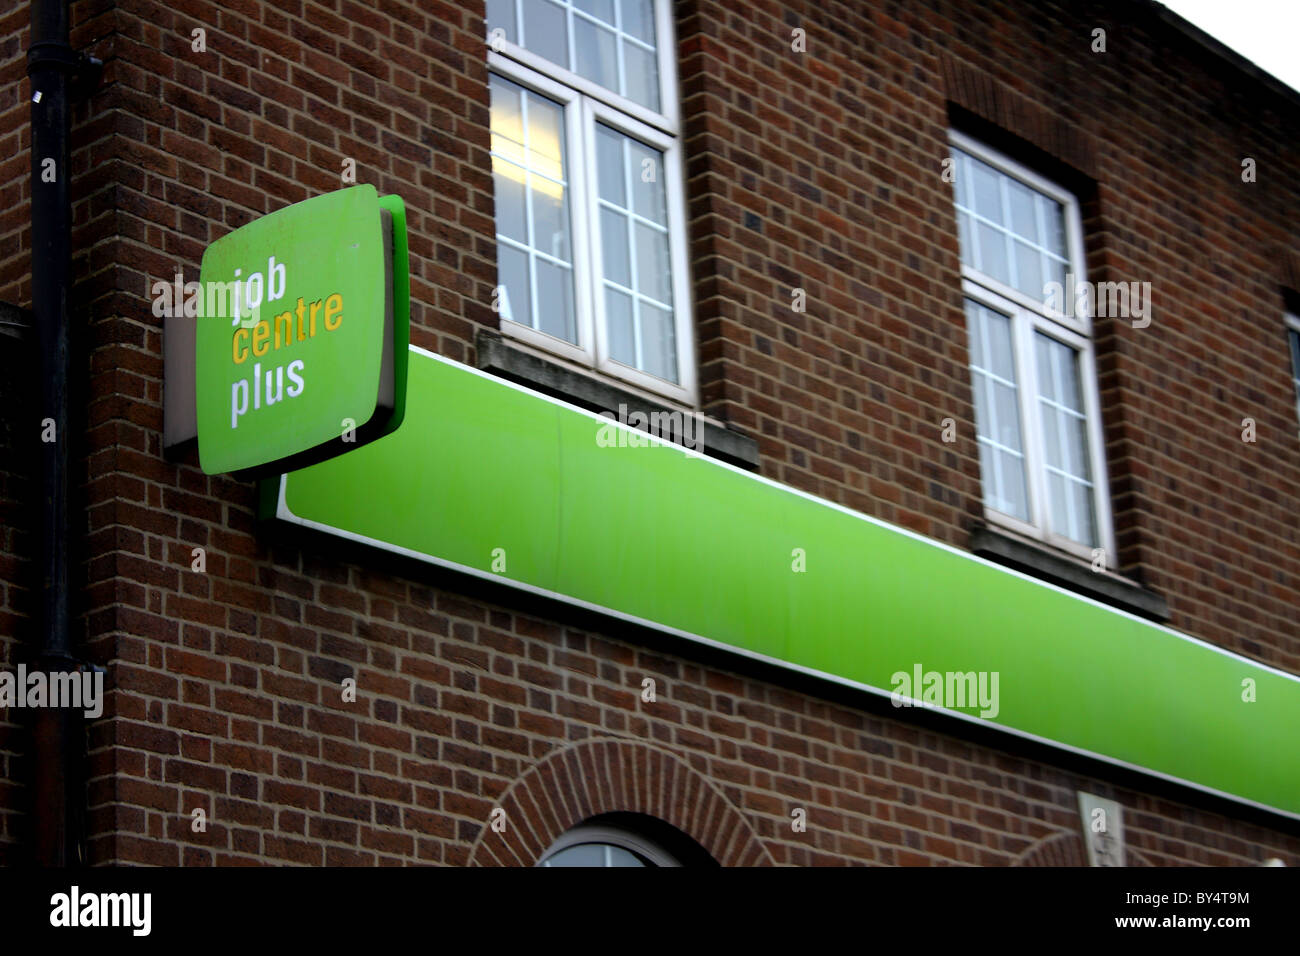 A job centre plus brick building showing their brand and logo on the front of the branch. Stock Photo